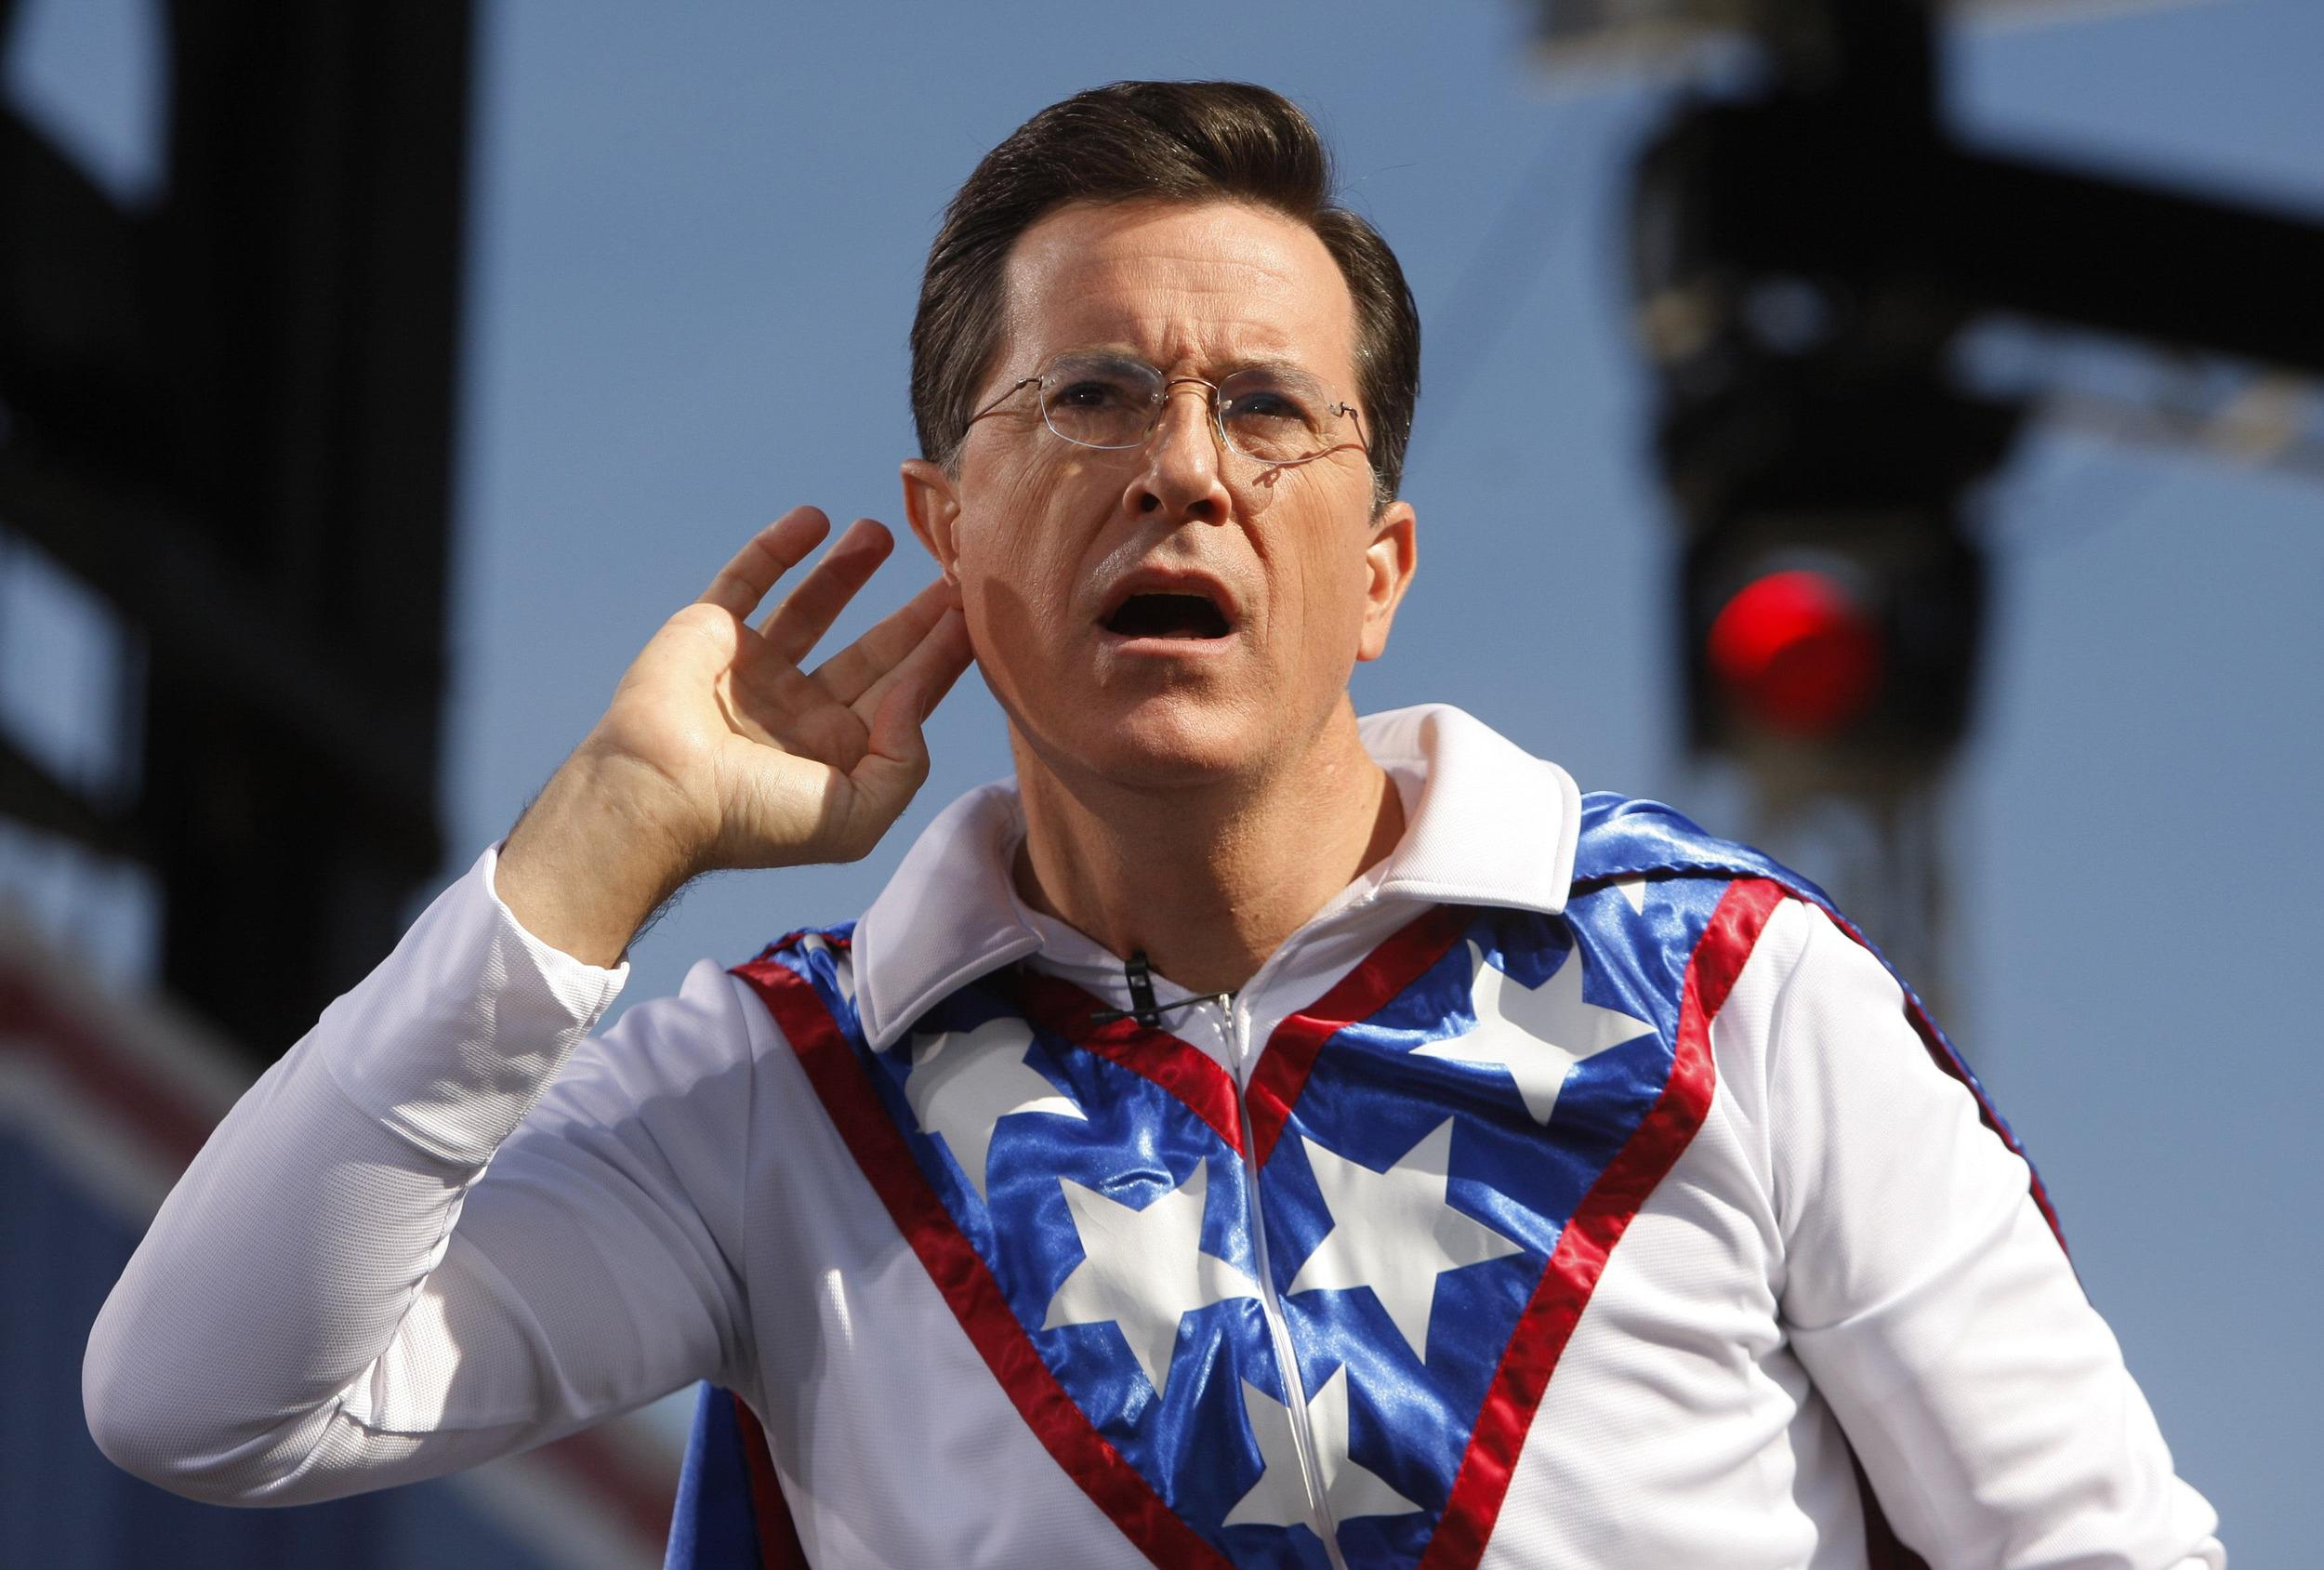 Image: File photo of Comedian Stephen Colbert gestures during the